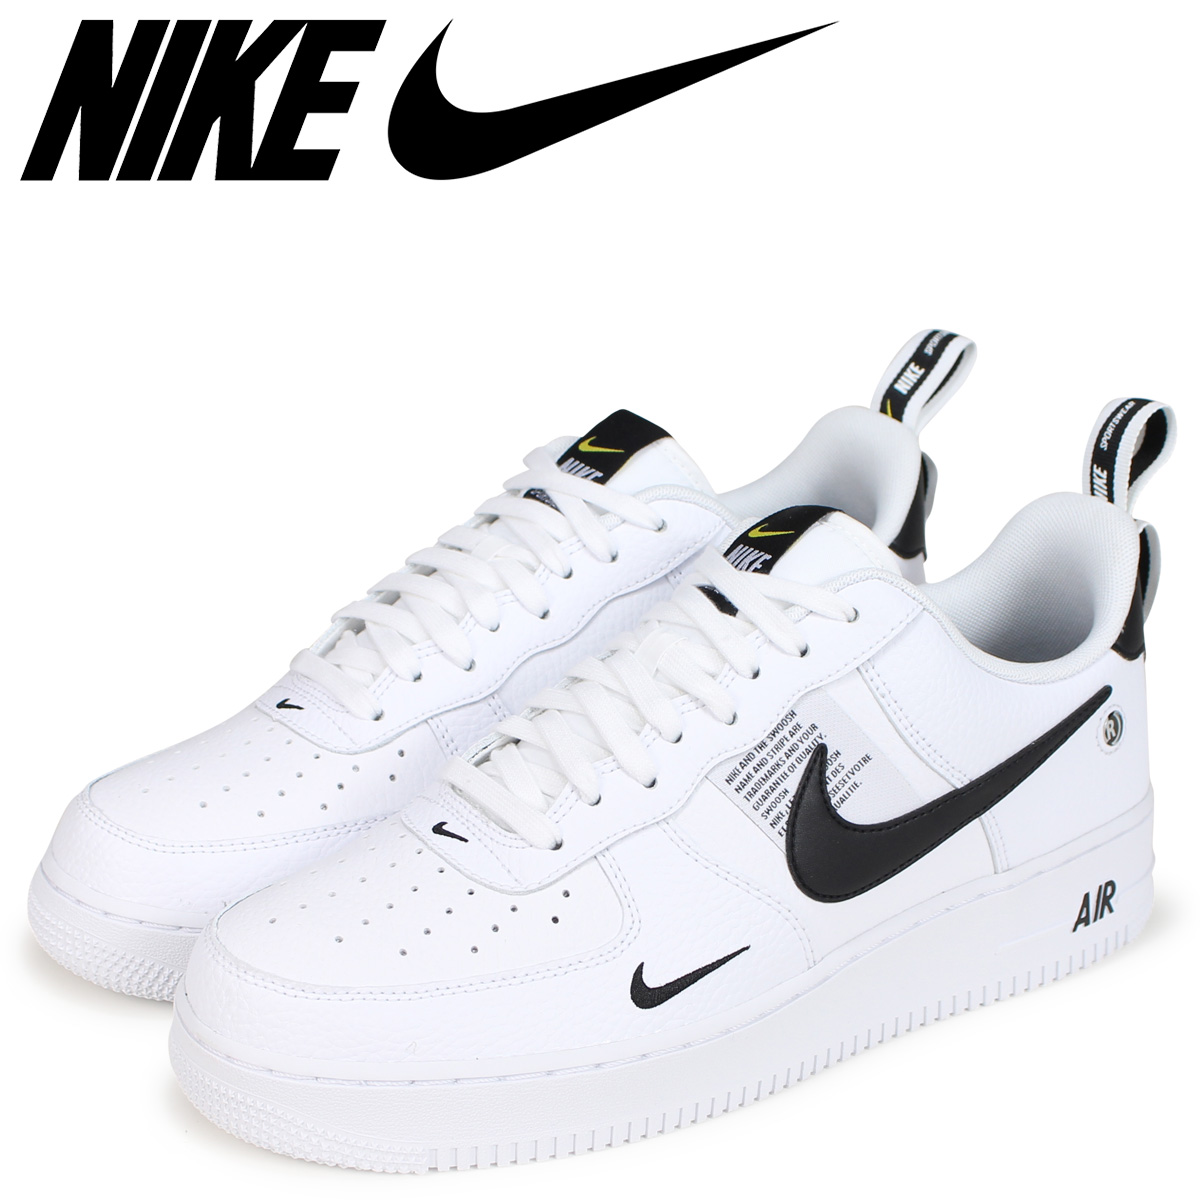 Air Force 1 '07 LV8 Utility WhiteBlack | White nike shoes